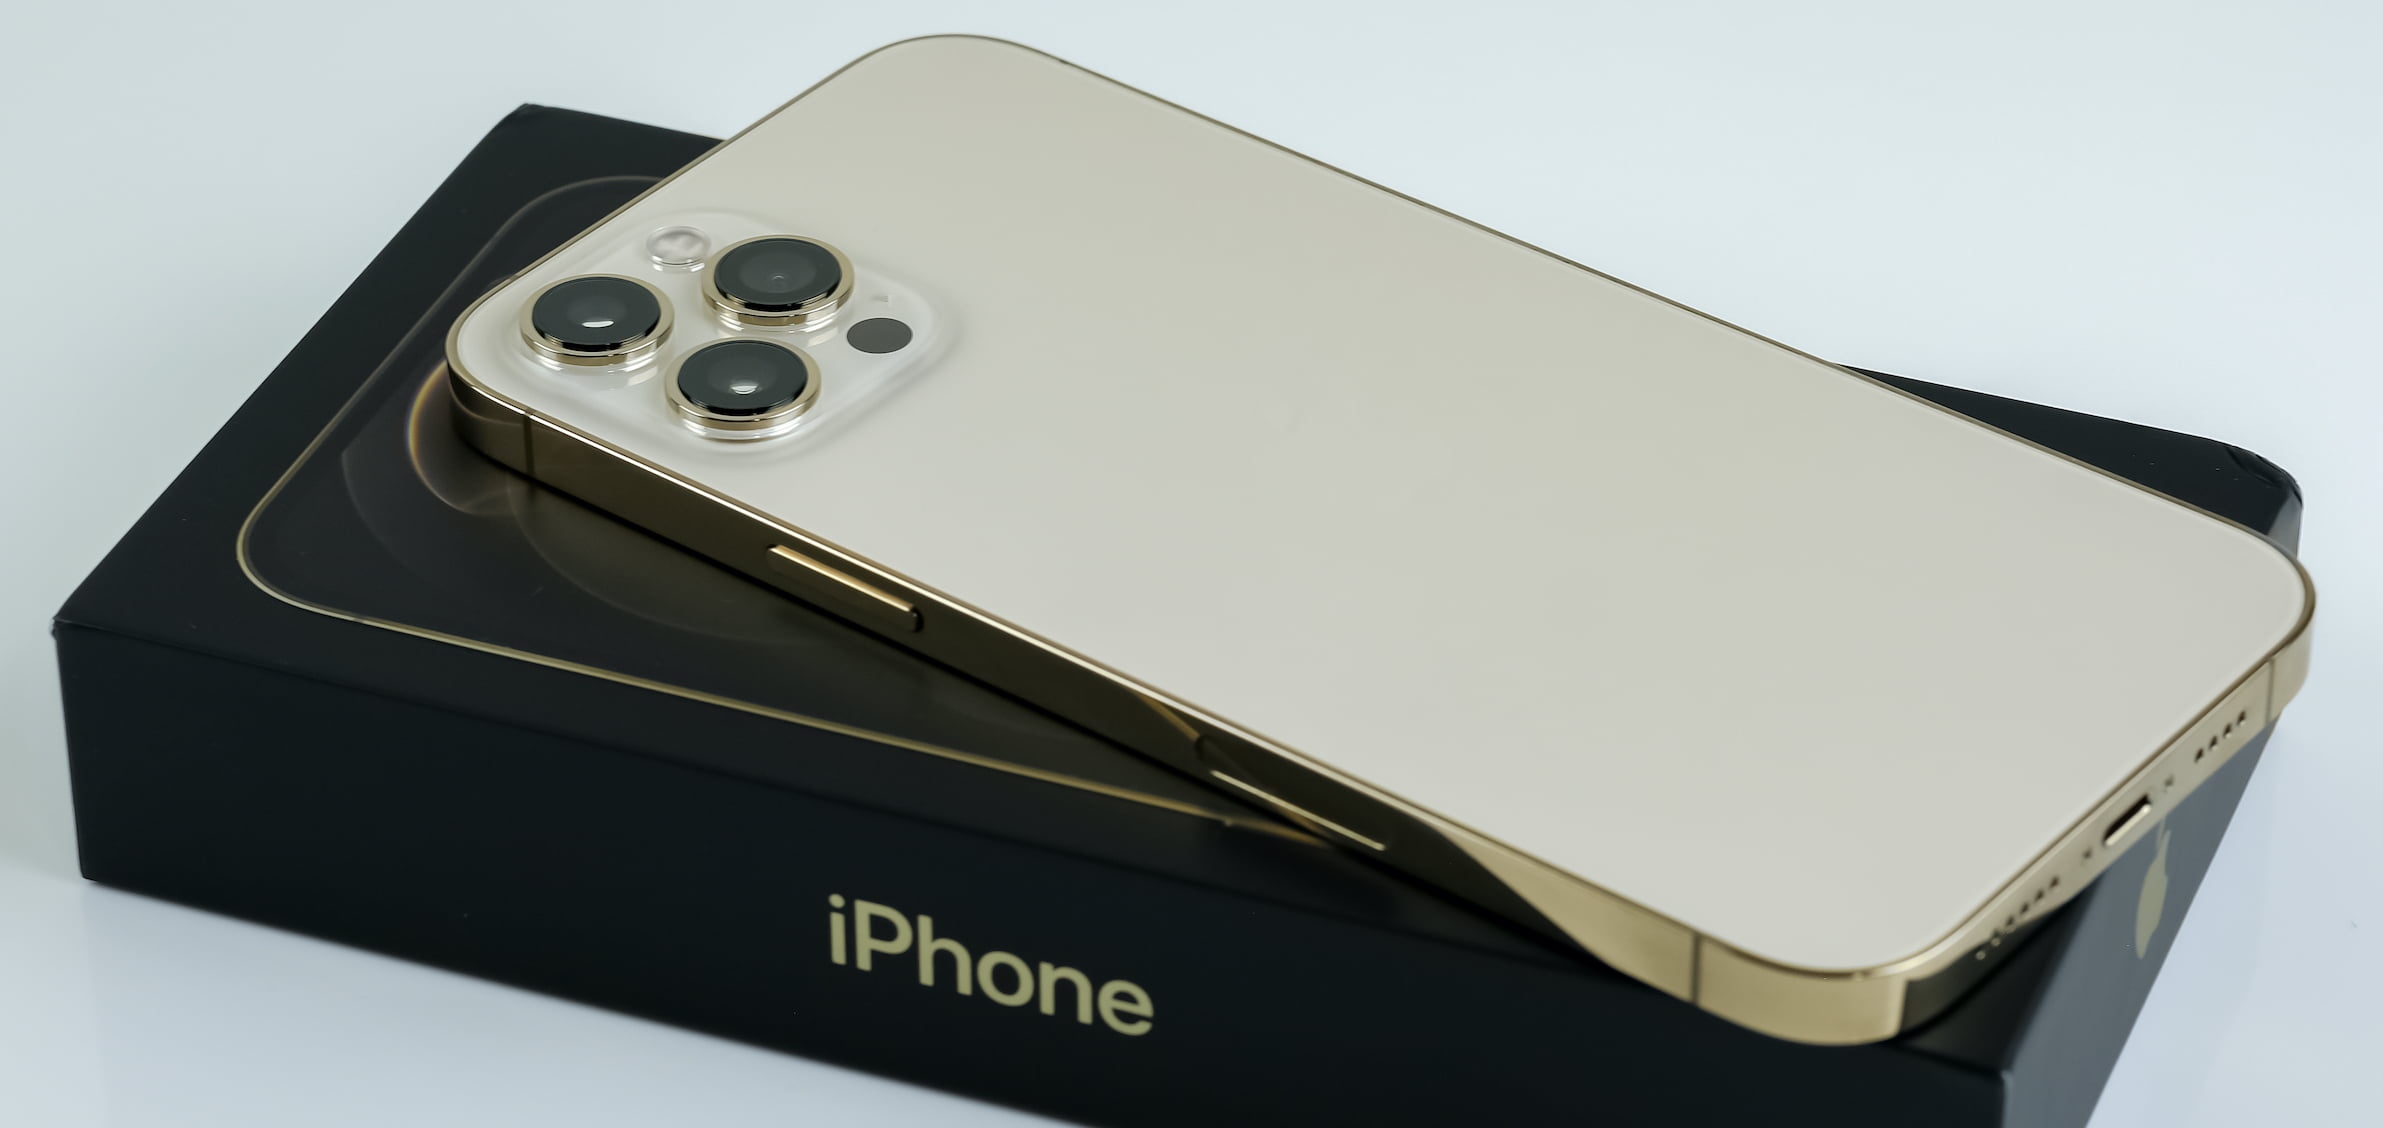 iPhone 12 pro max in gold